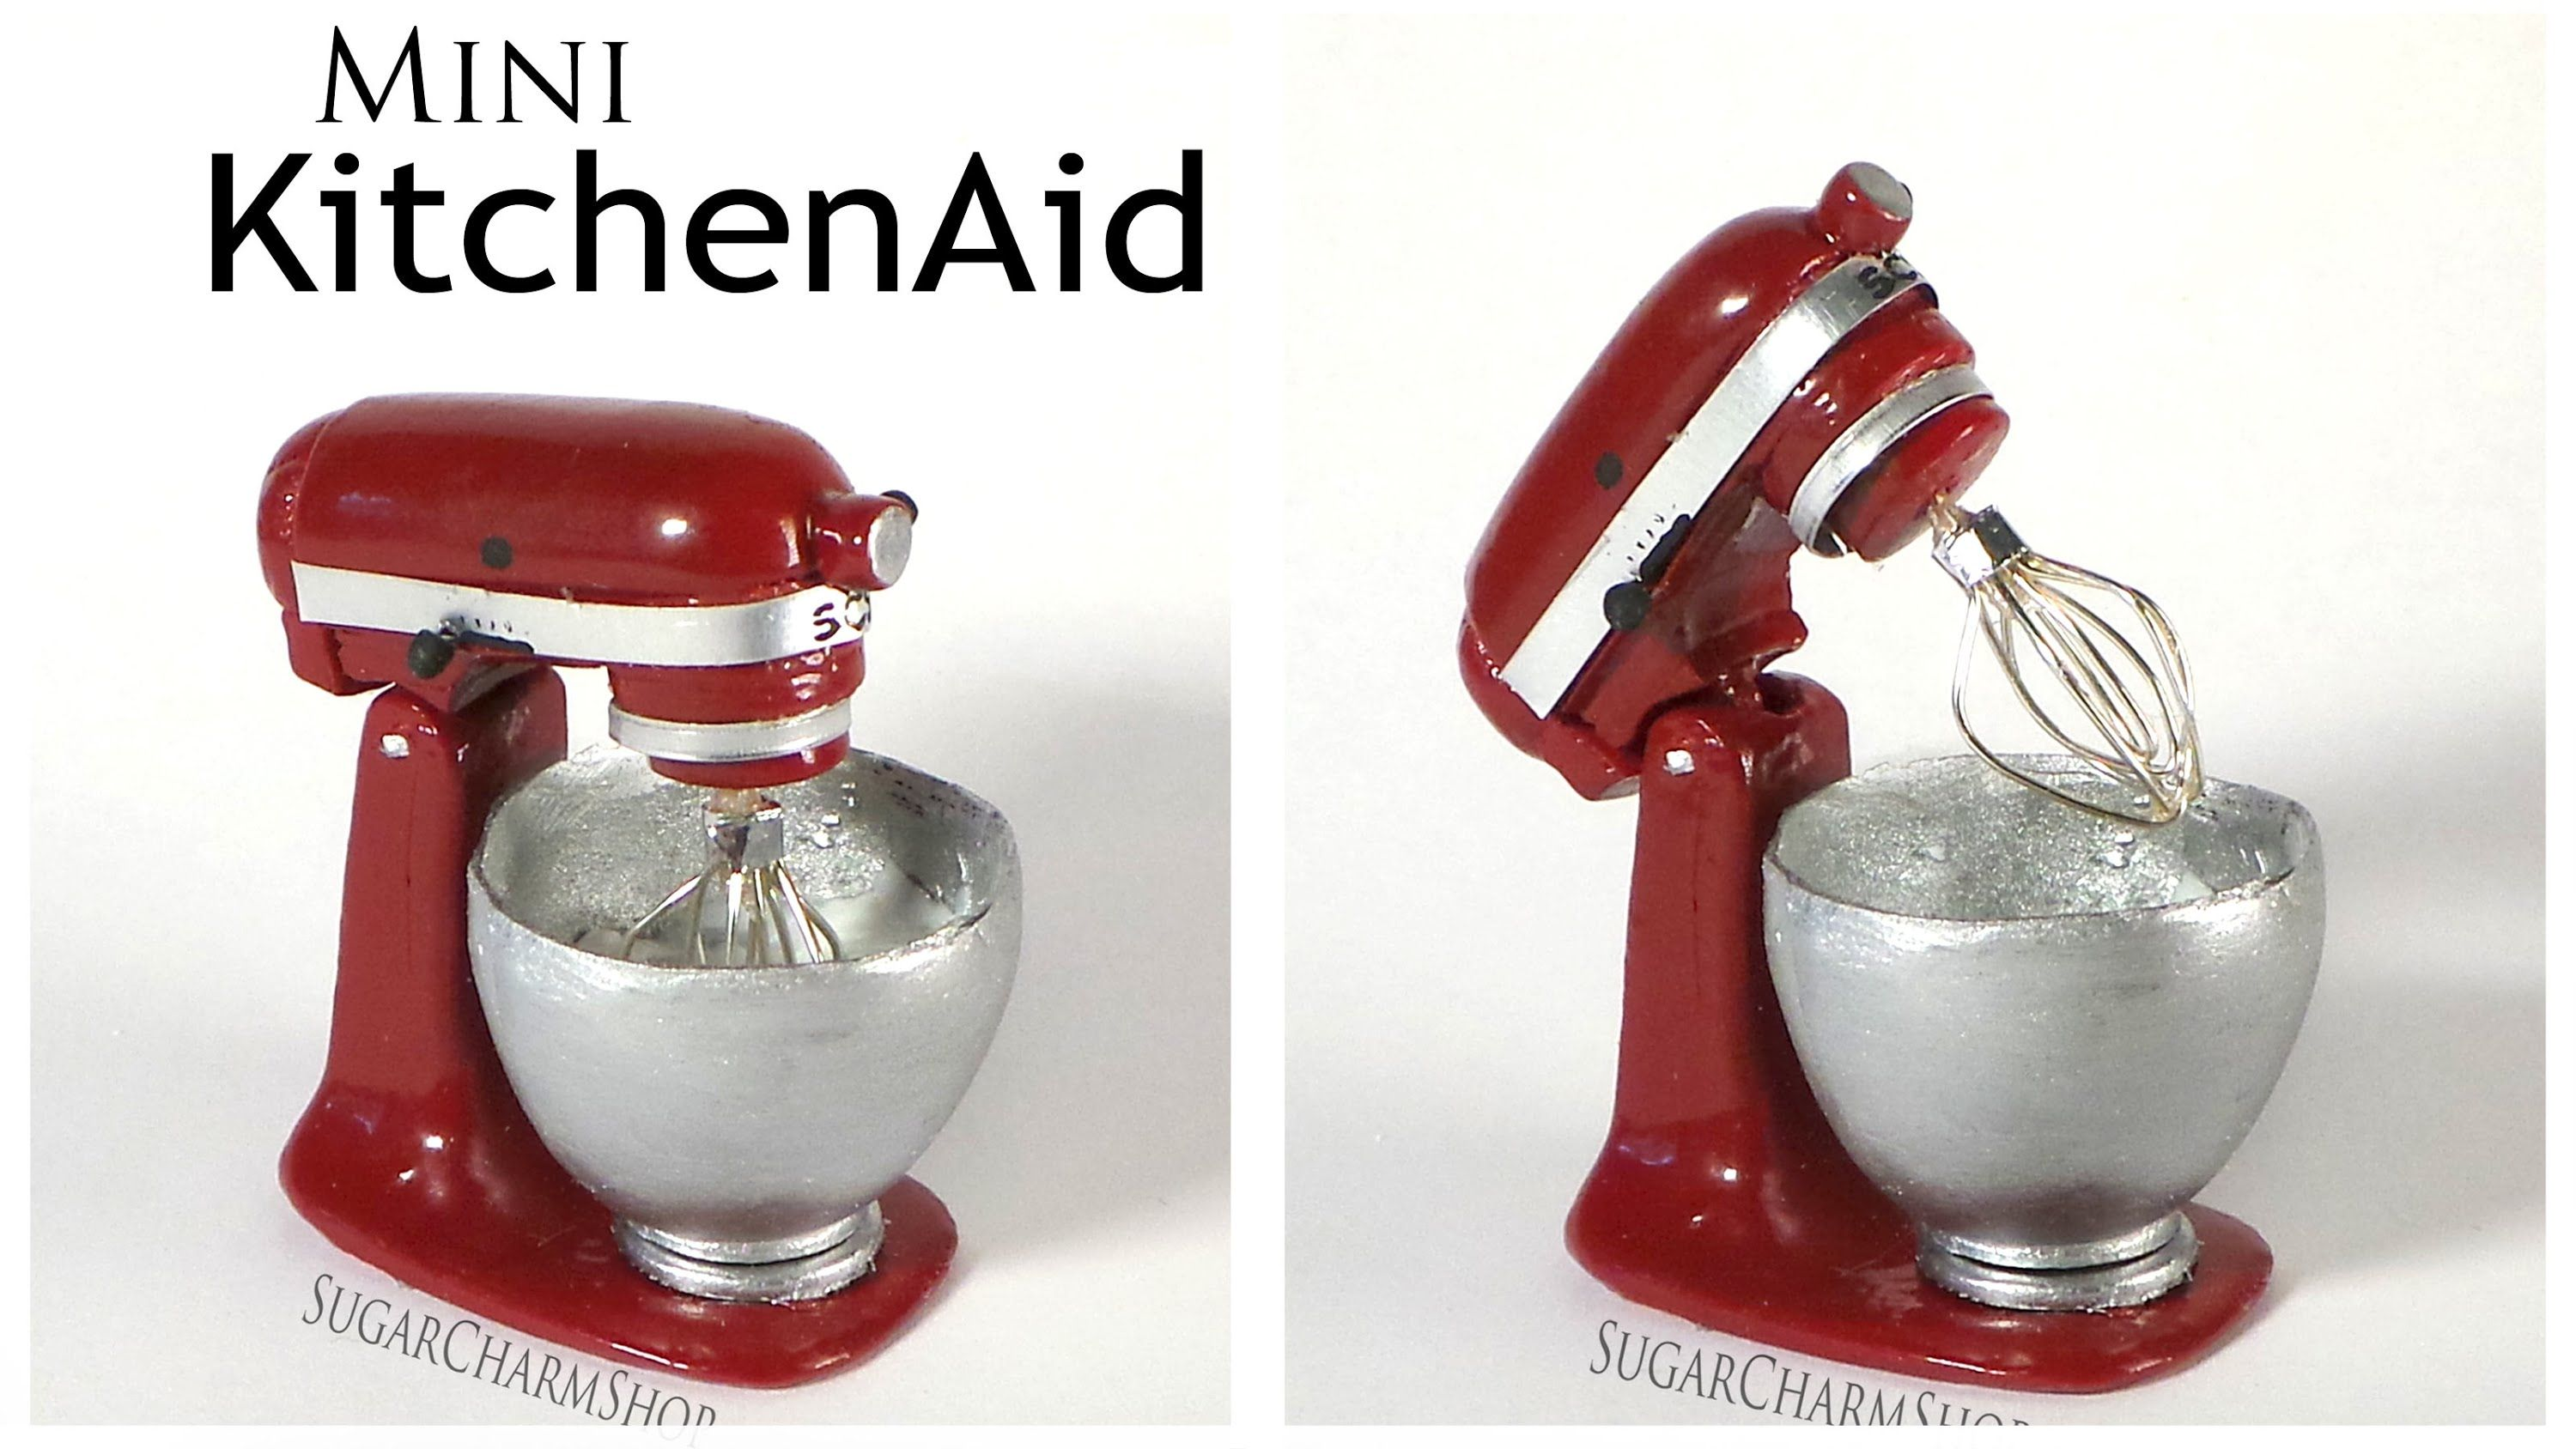 Miniature KitchenAid / Stand Mixer - Polymer Clay Tutorial #miniaturekitchen